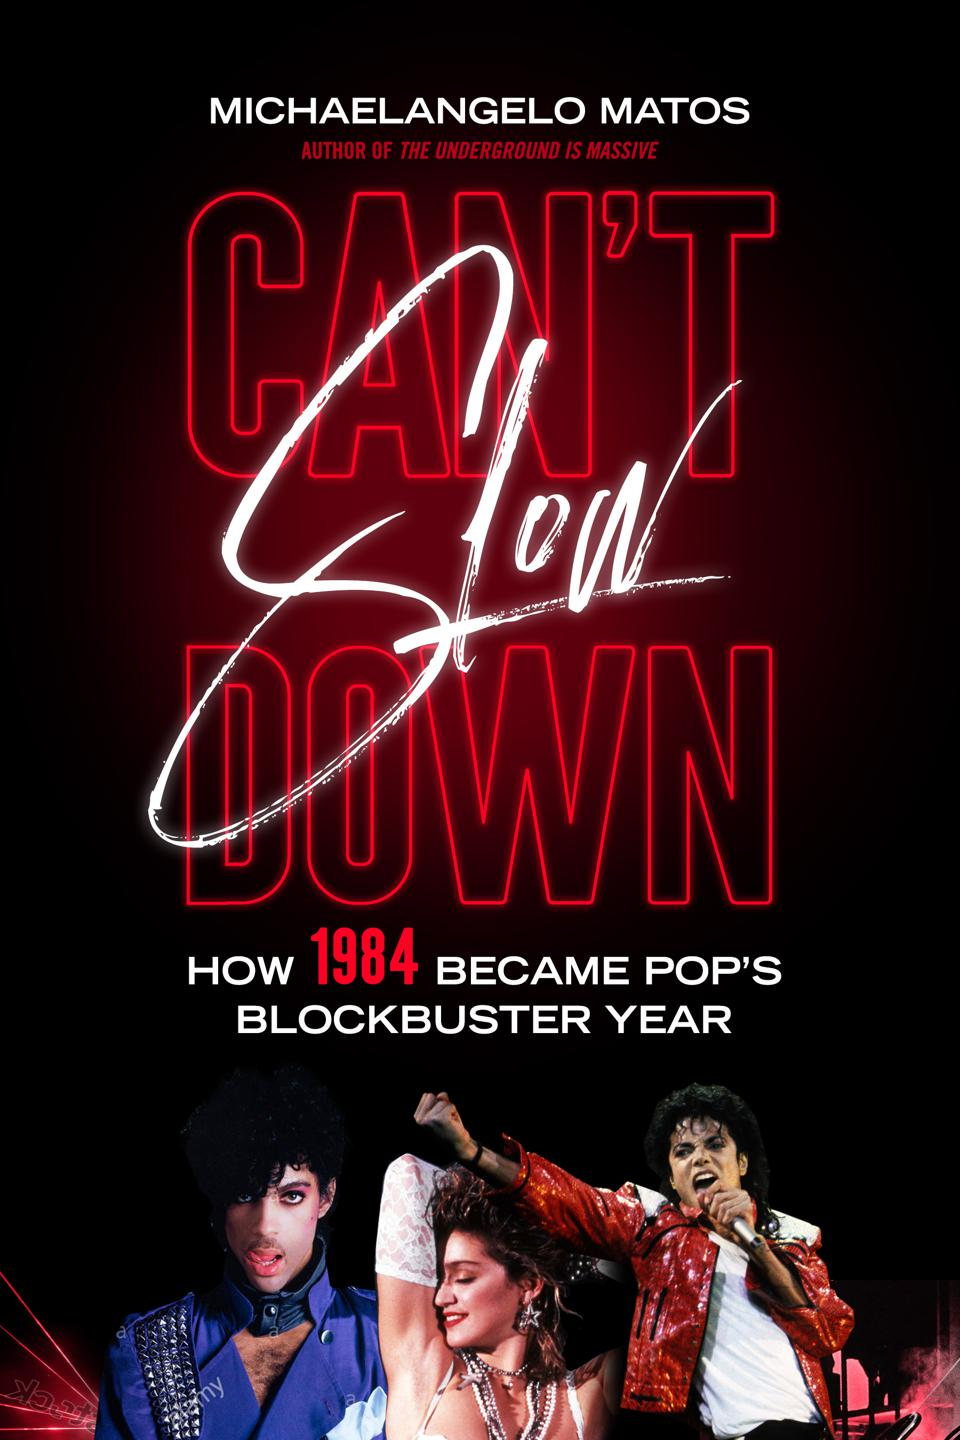 Cover of 'Can't Slow Down' by Michaelangelo Matos.